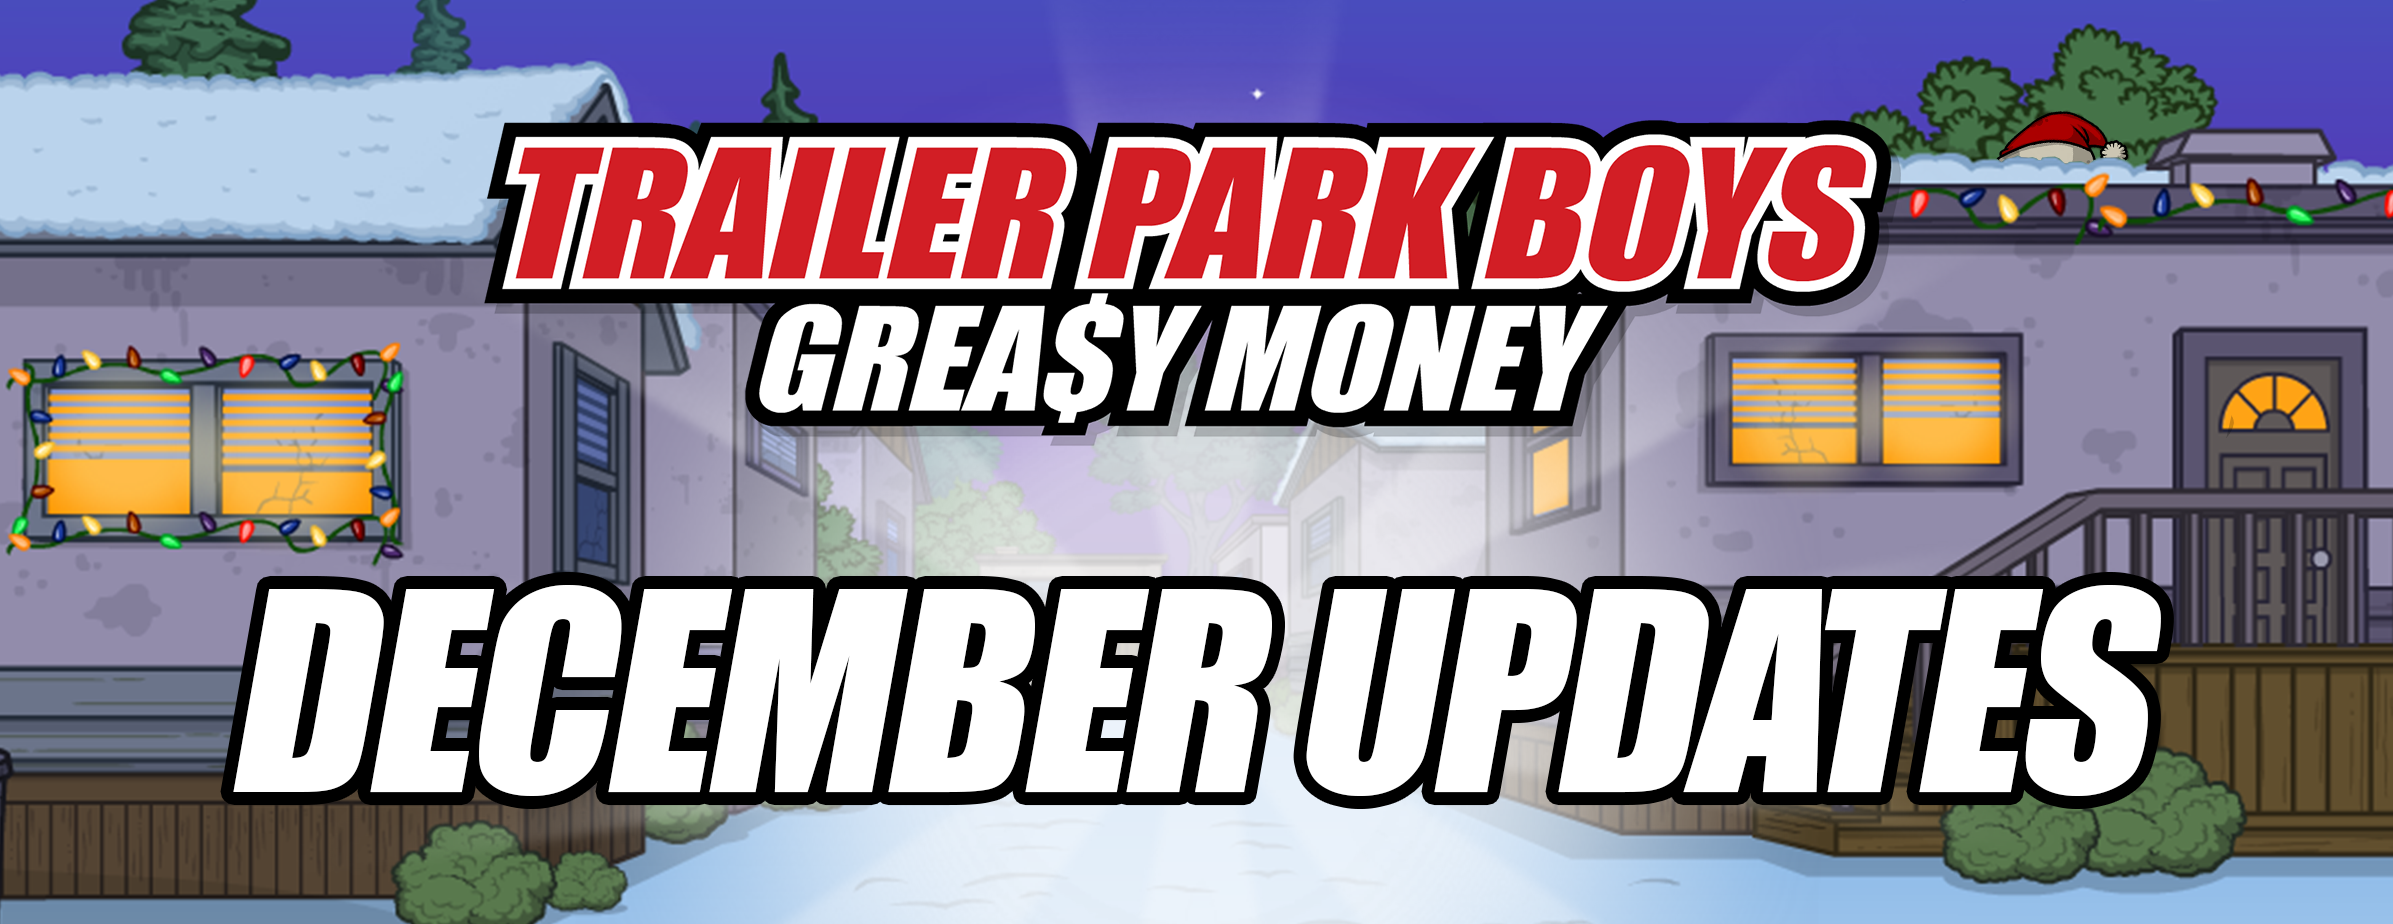 Trailer Park Boys: Greasy December Events!